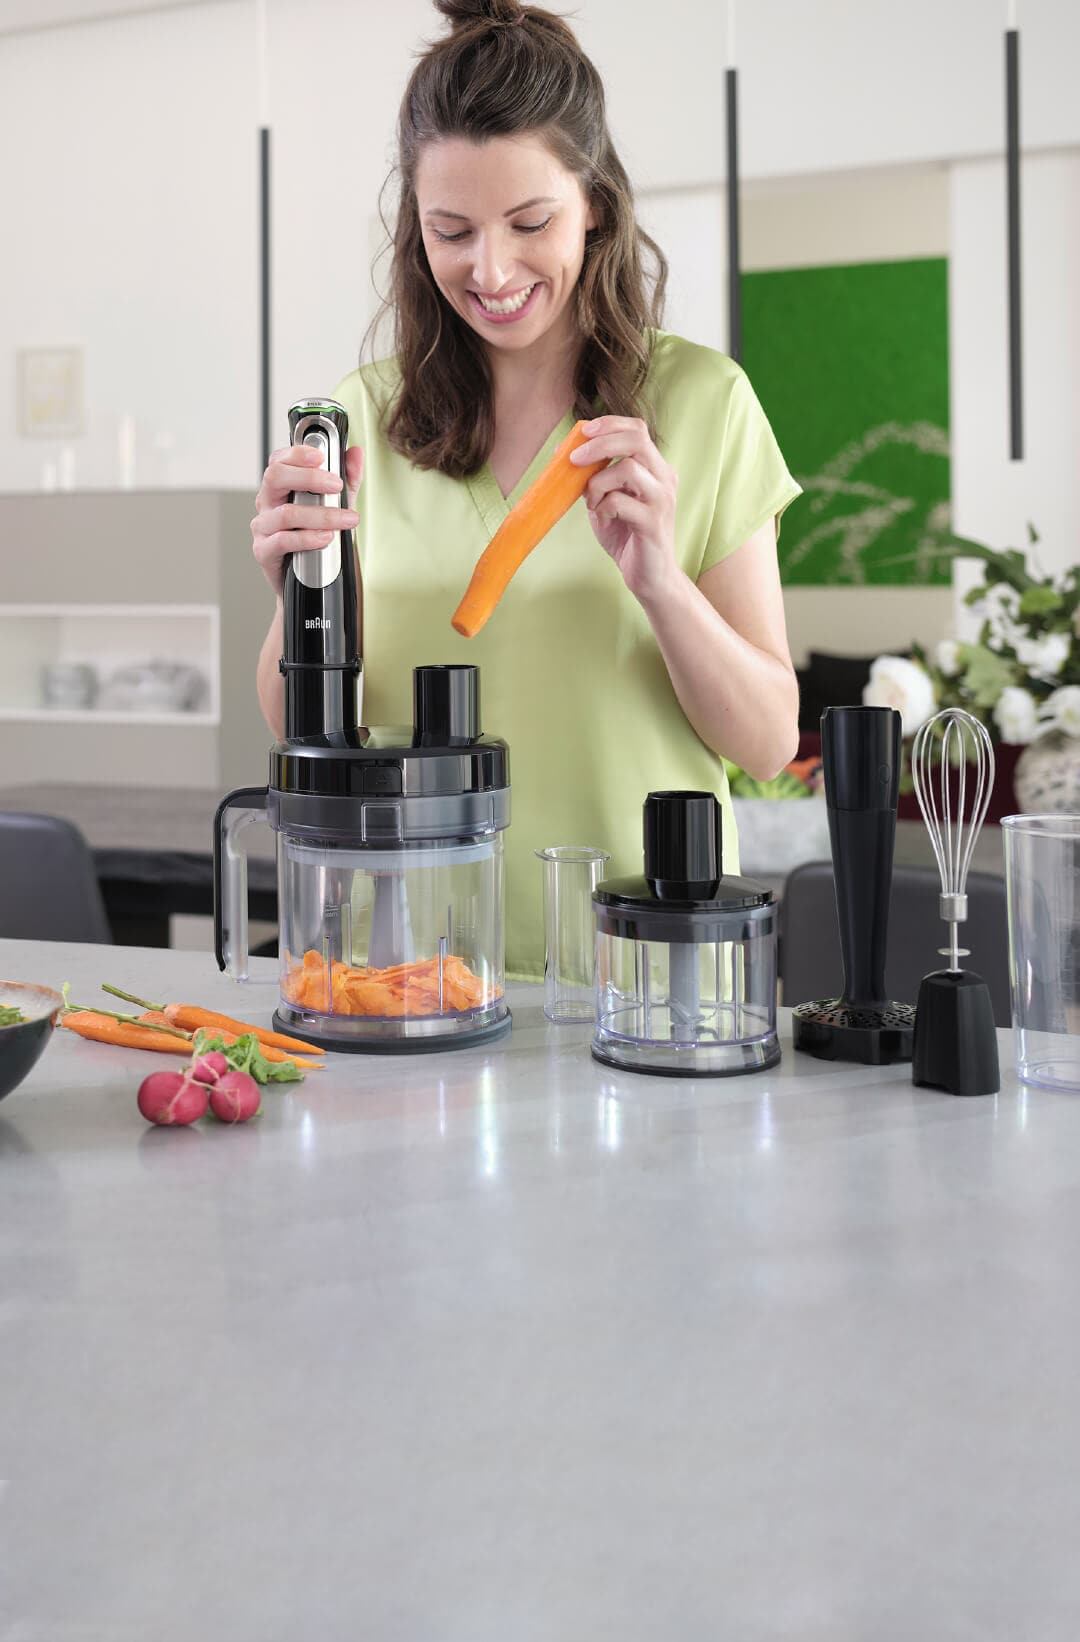 Braun MultiQuick 9X Hand blender - Braun's most powerful and best performing.